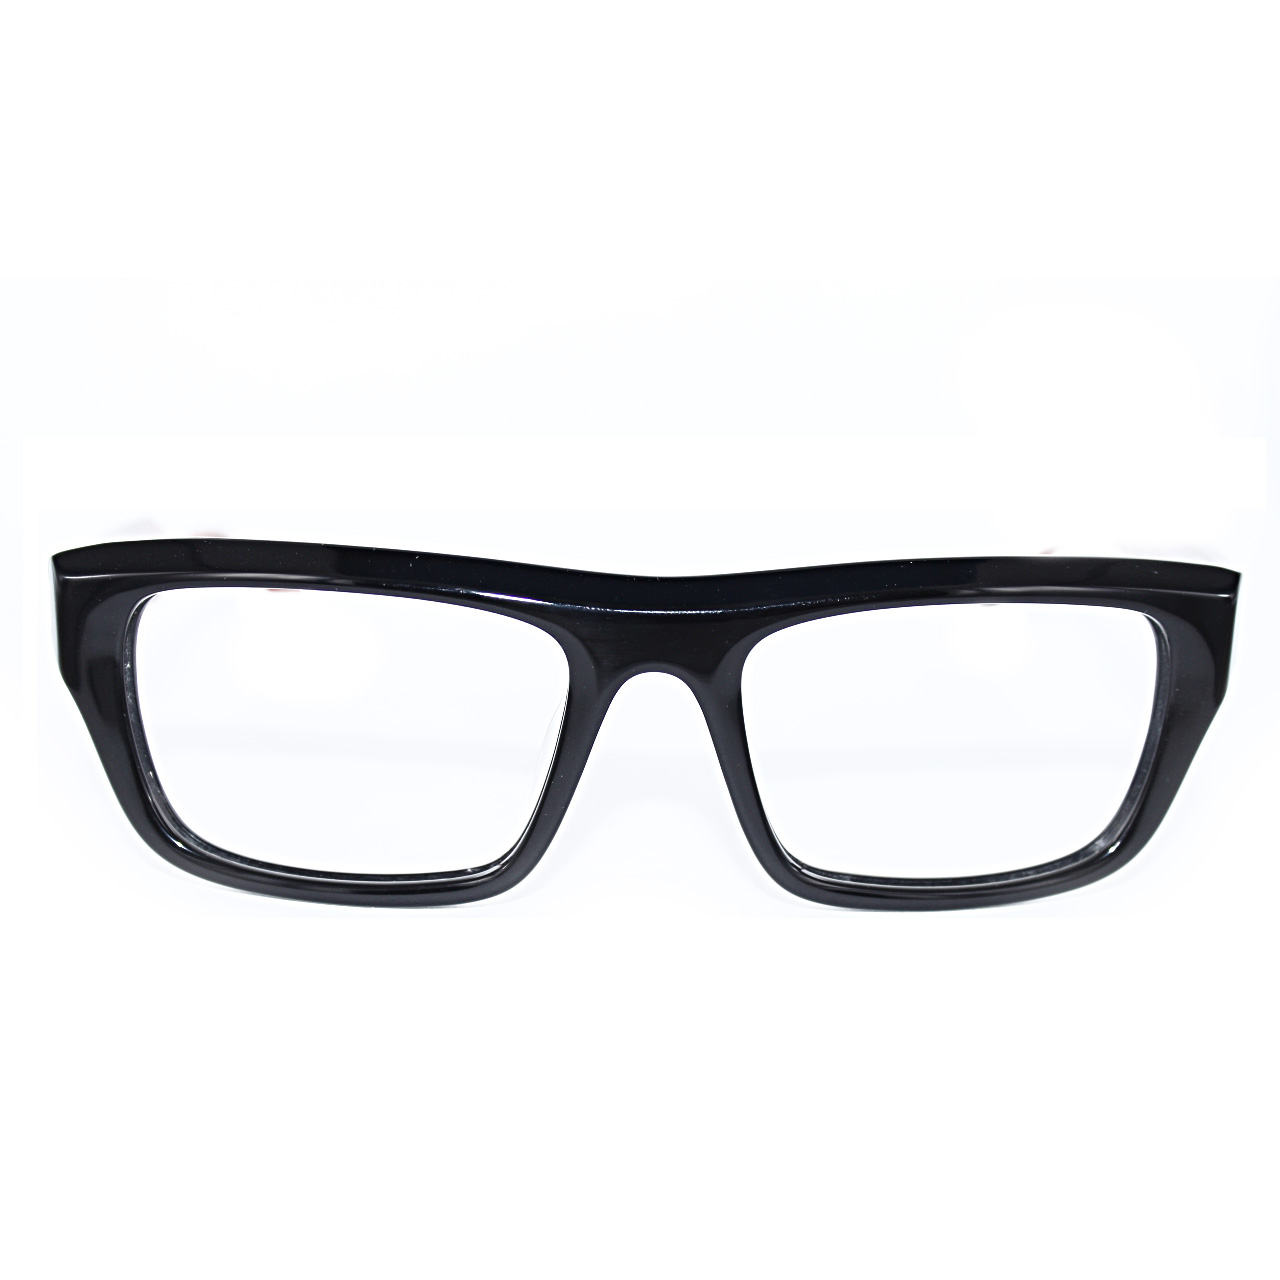 0d466efd3 Stylish and Affordable GEEK COUTURE Style Cass | RX Eyeglasses ...